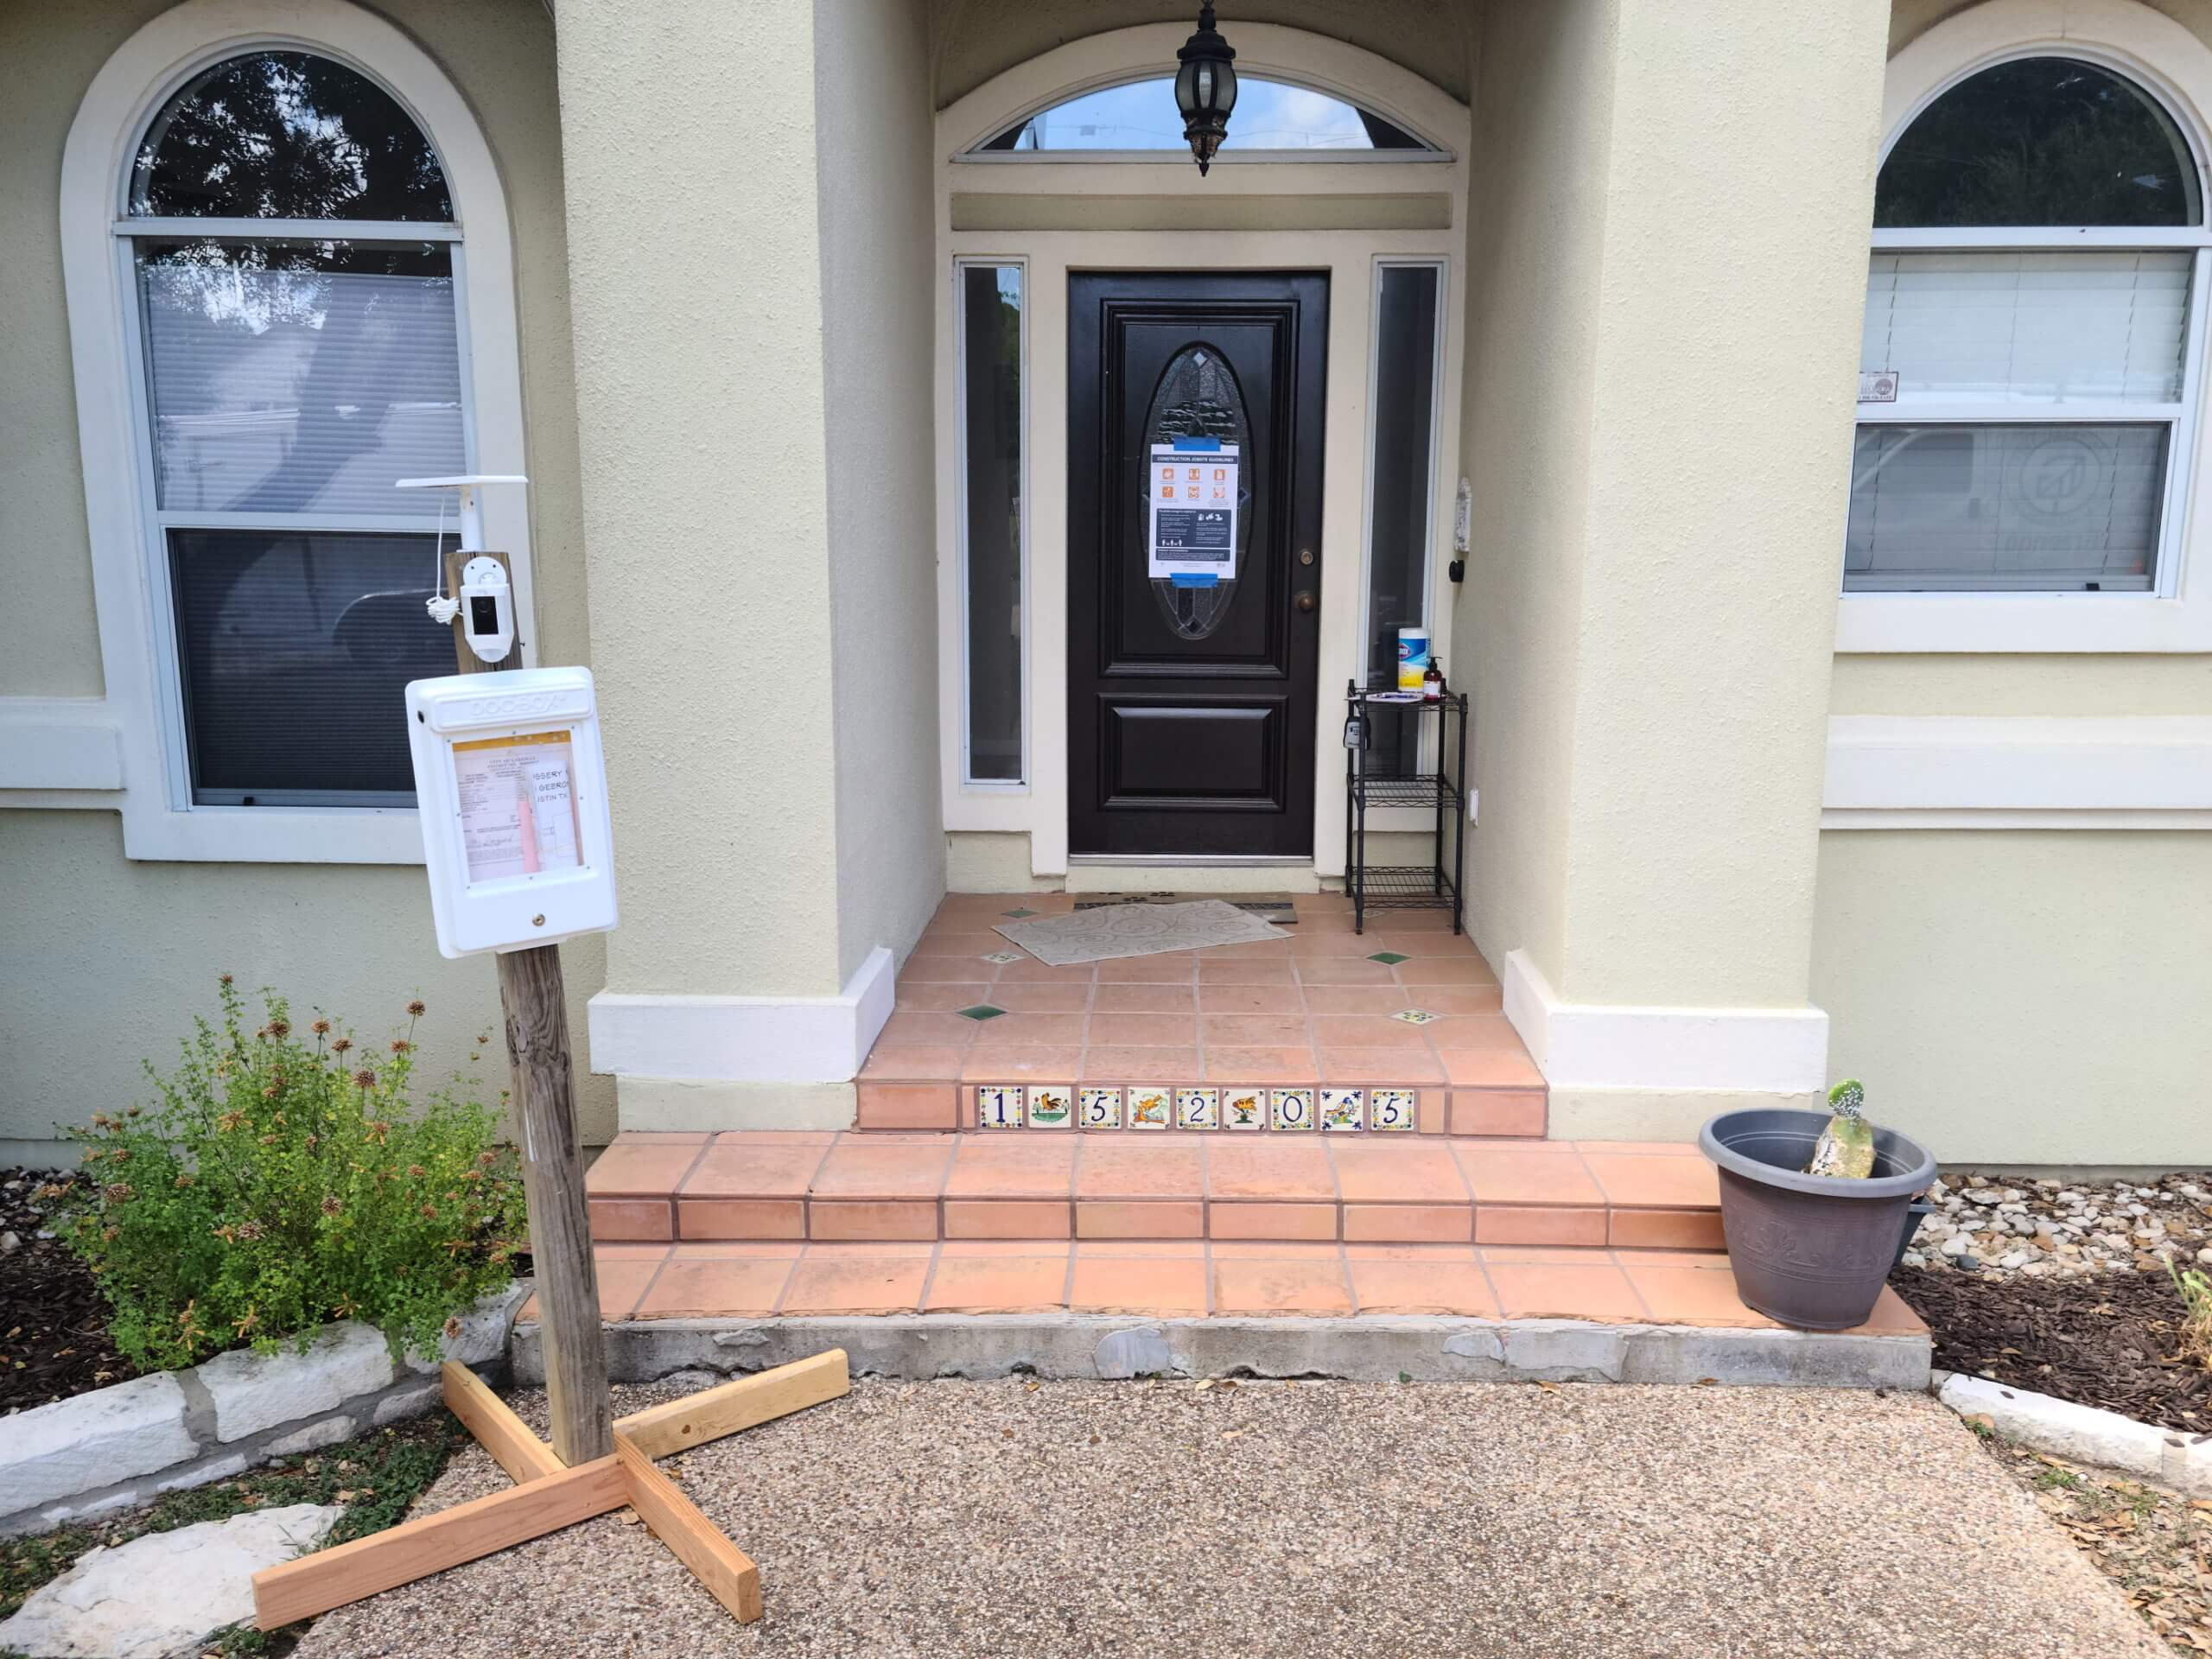 Front entrance of a home being remodeled with a sign-in sheet for safety measures